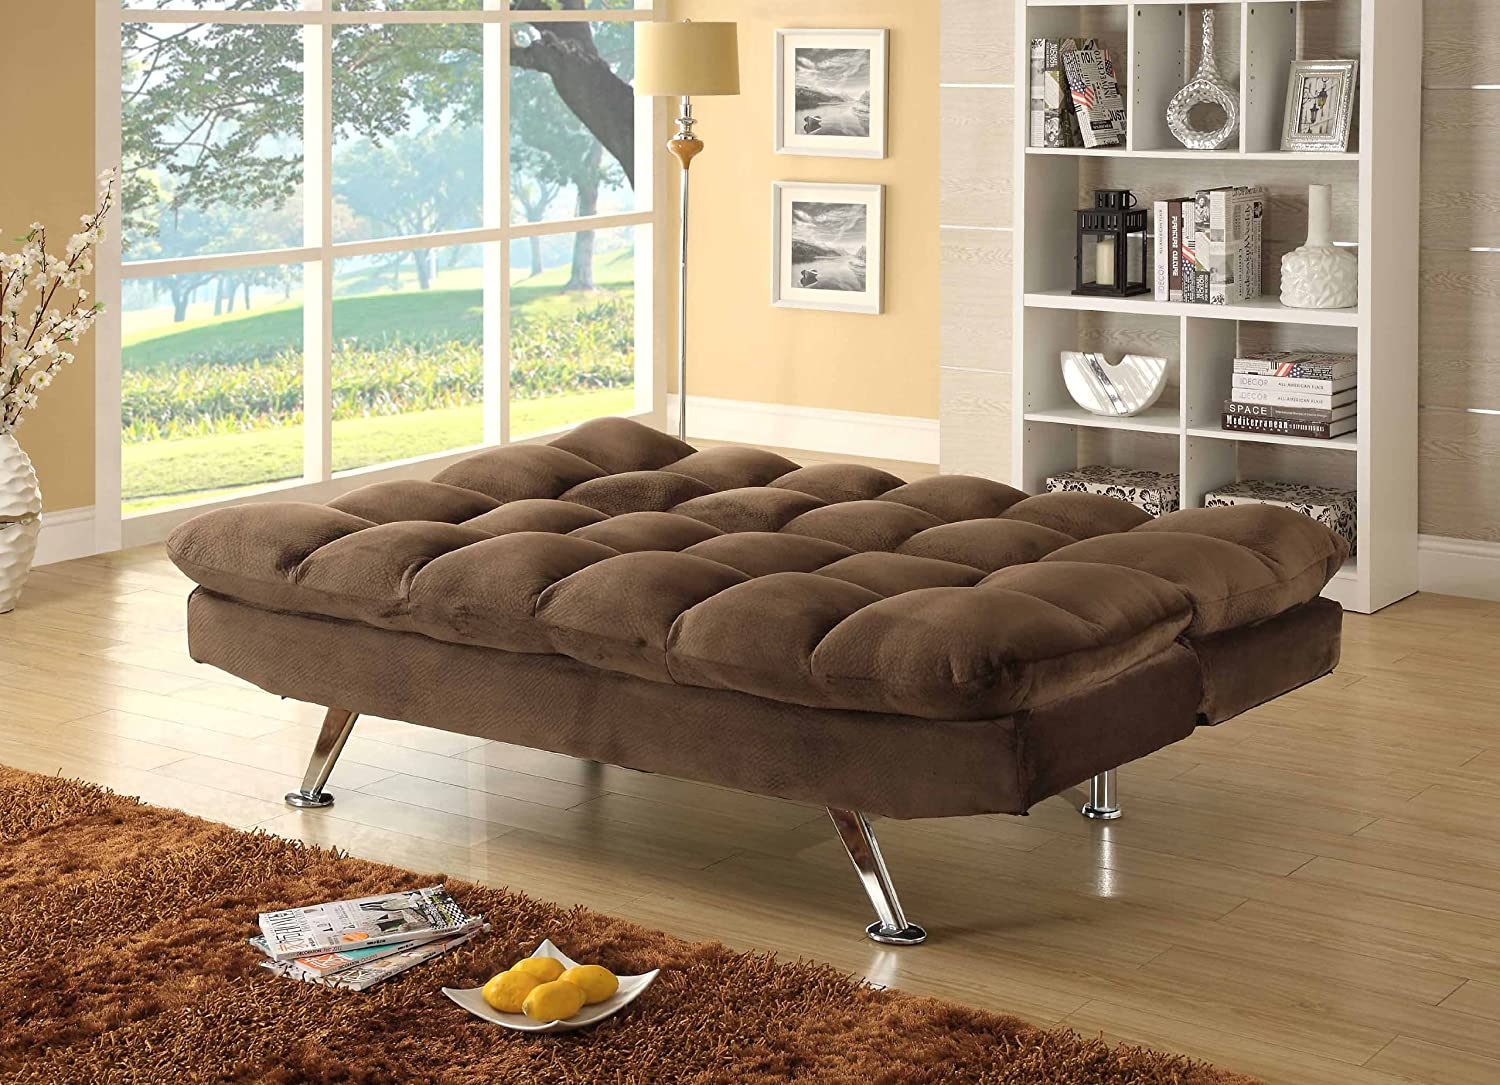 Superieur Amazon.com: Homelegance Jazz 4809CH Convertible/Adjustable Sofa Bed,  Chocolate Brown: Kitchen U0026 Dining